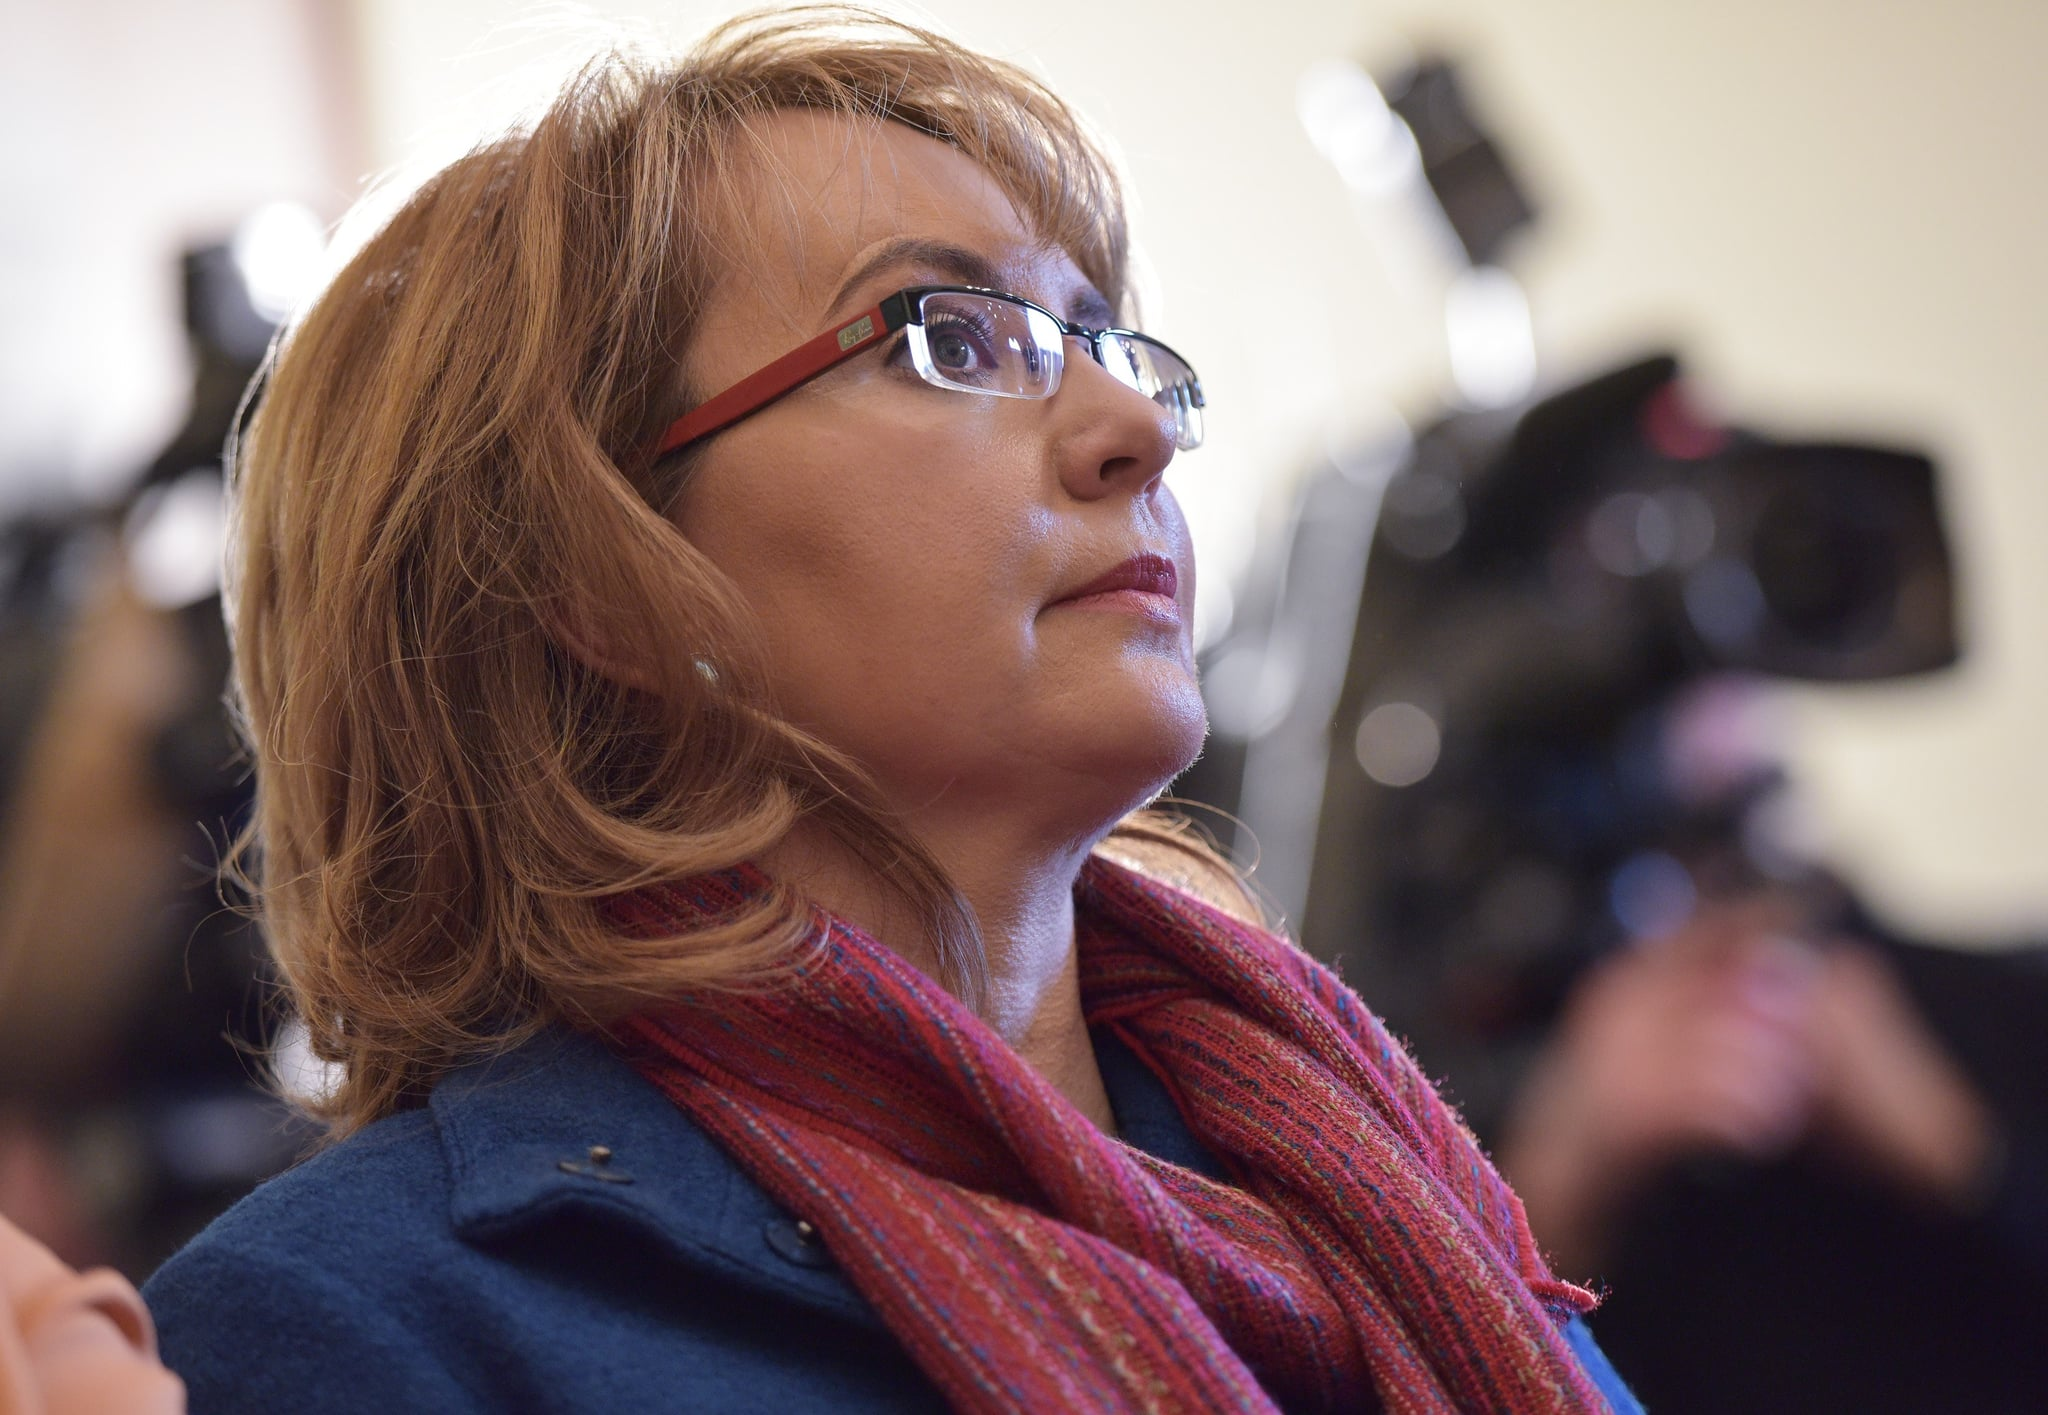 Gabrielle Giffords and Mark Kelly on stopping gun violence